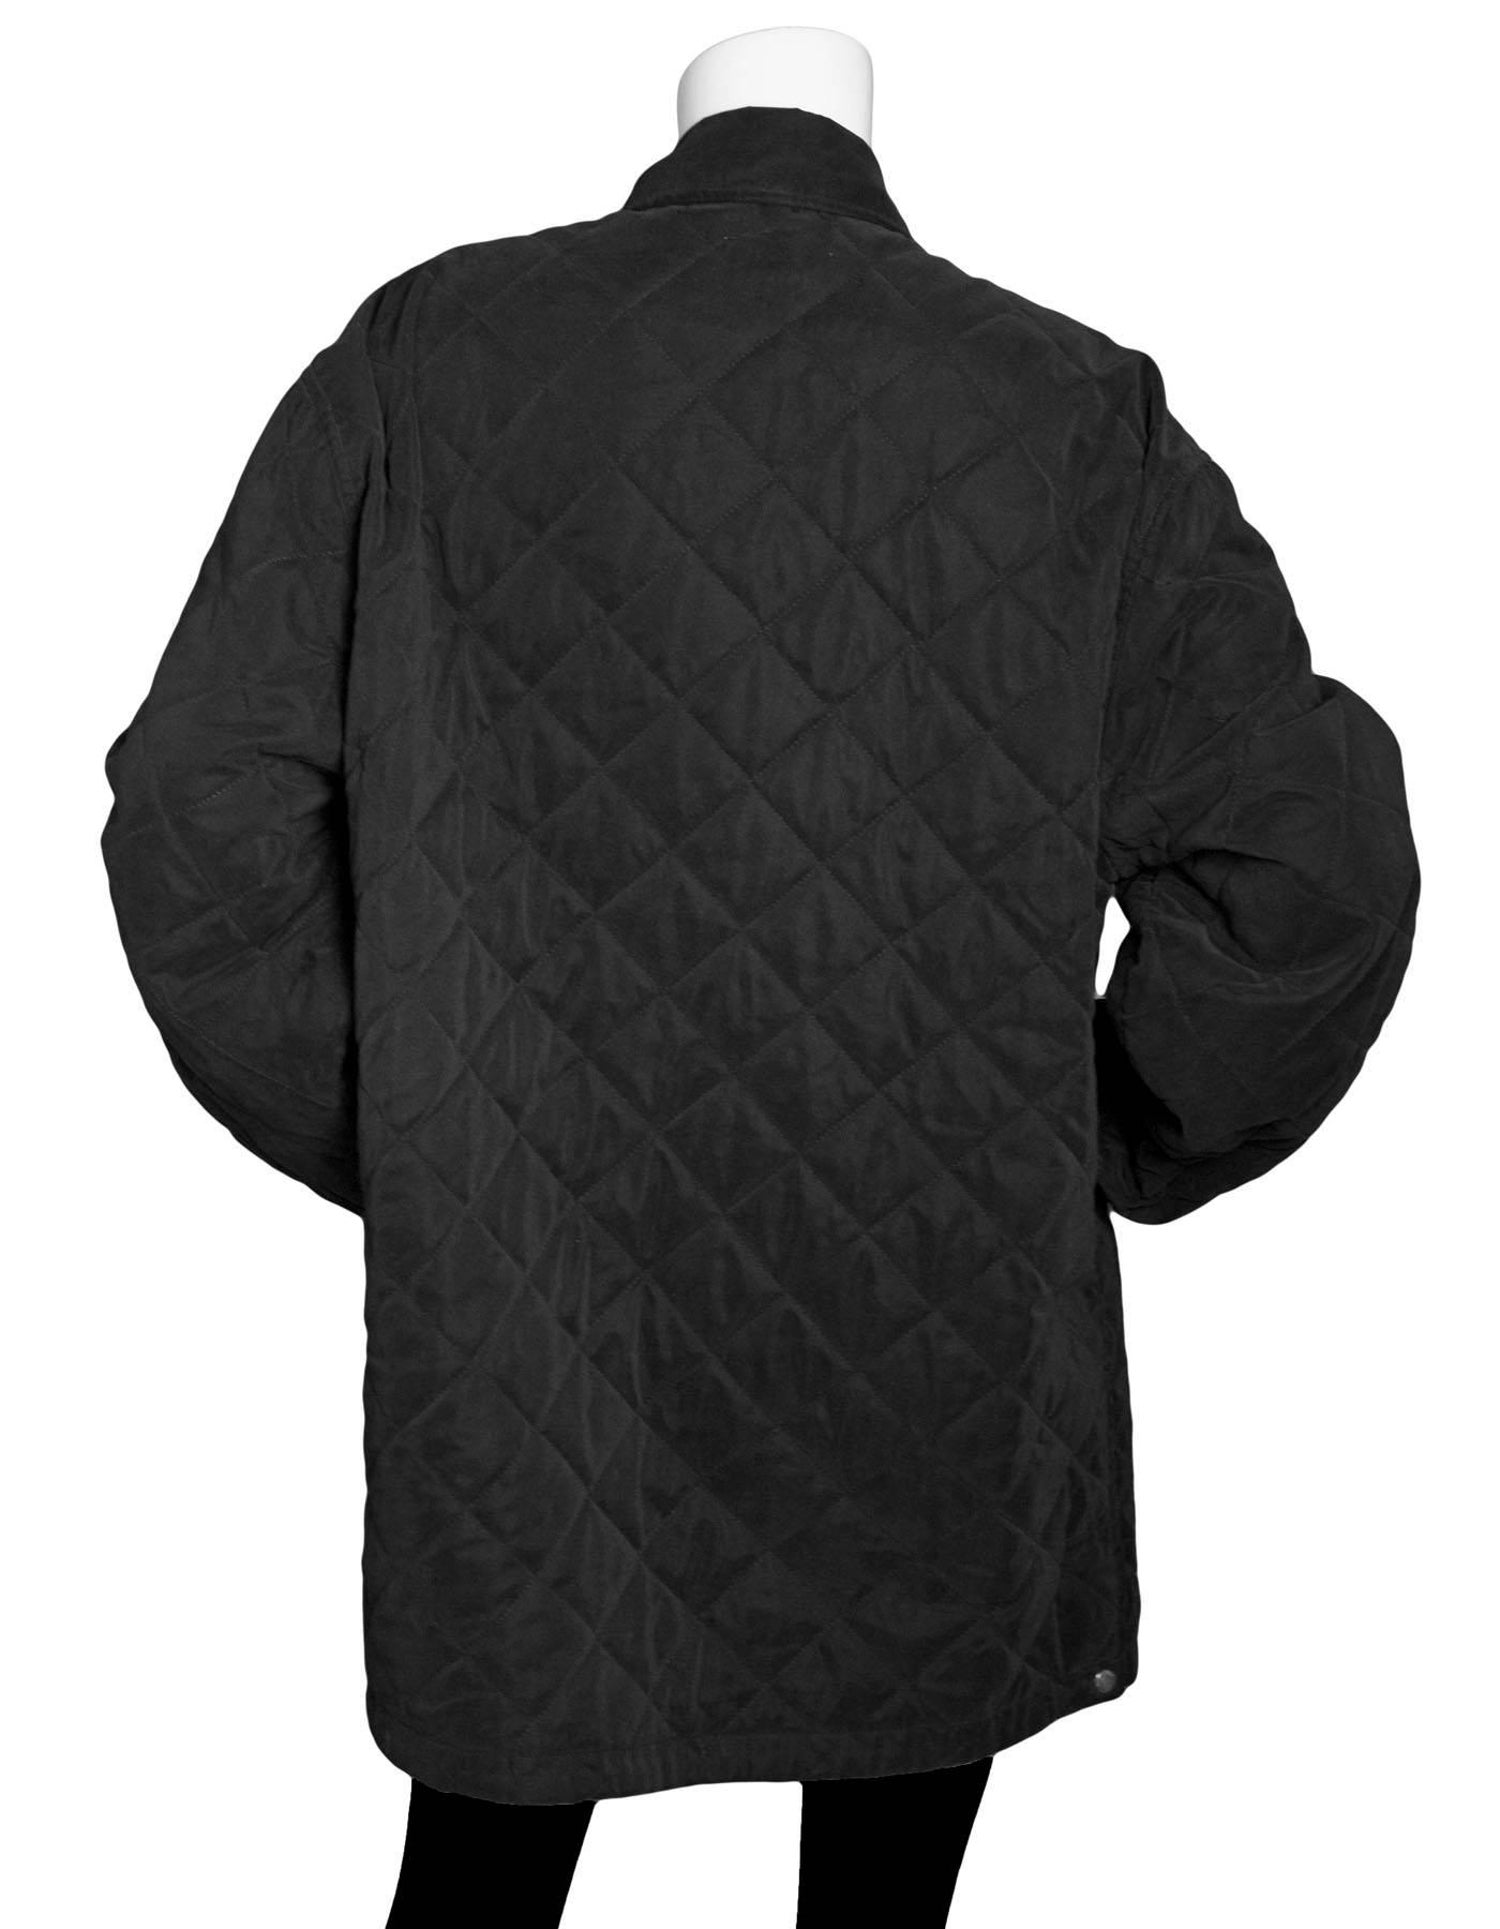 diamond jacket gallery quilted mens black quilt in women burberry image